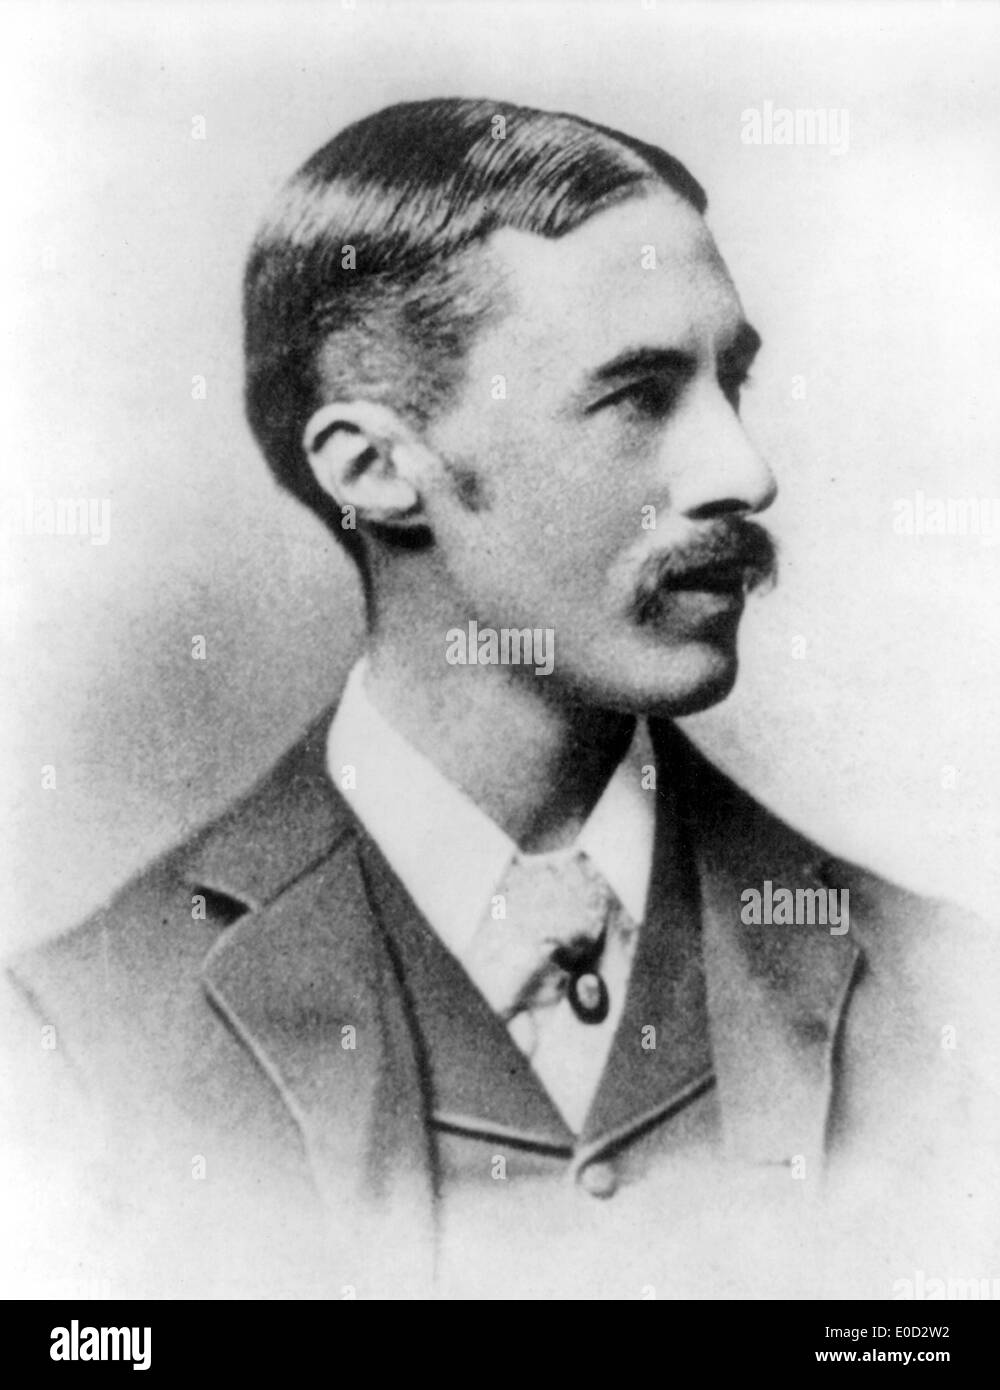 A.E.HOUSMAN (1858-1936) English classical scholar and poet about 1900 - Stock Image